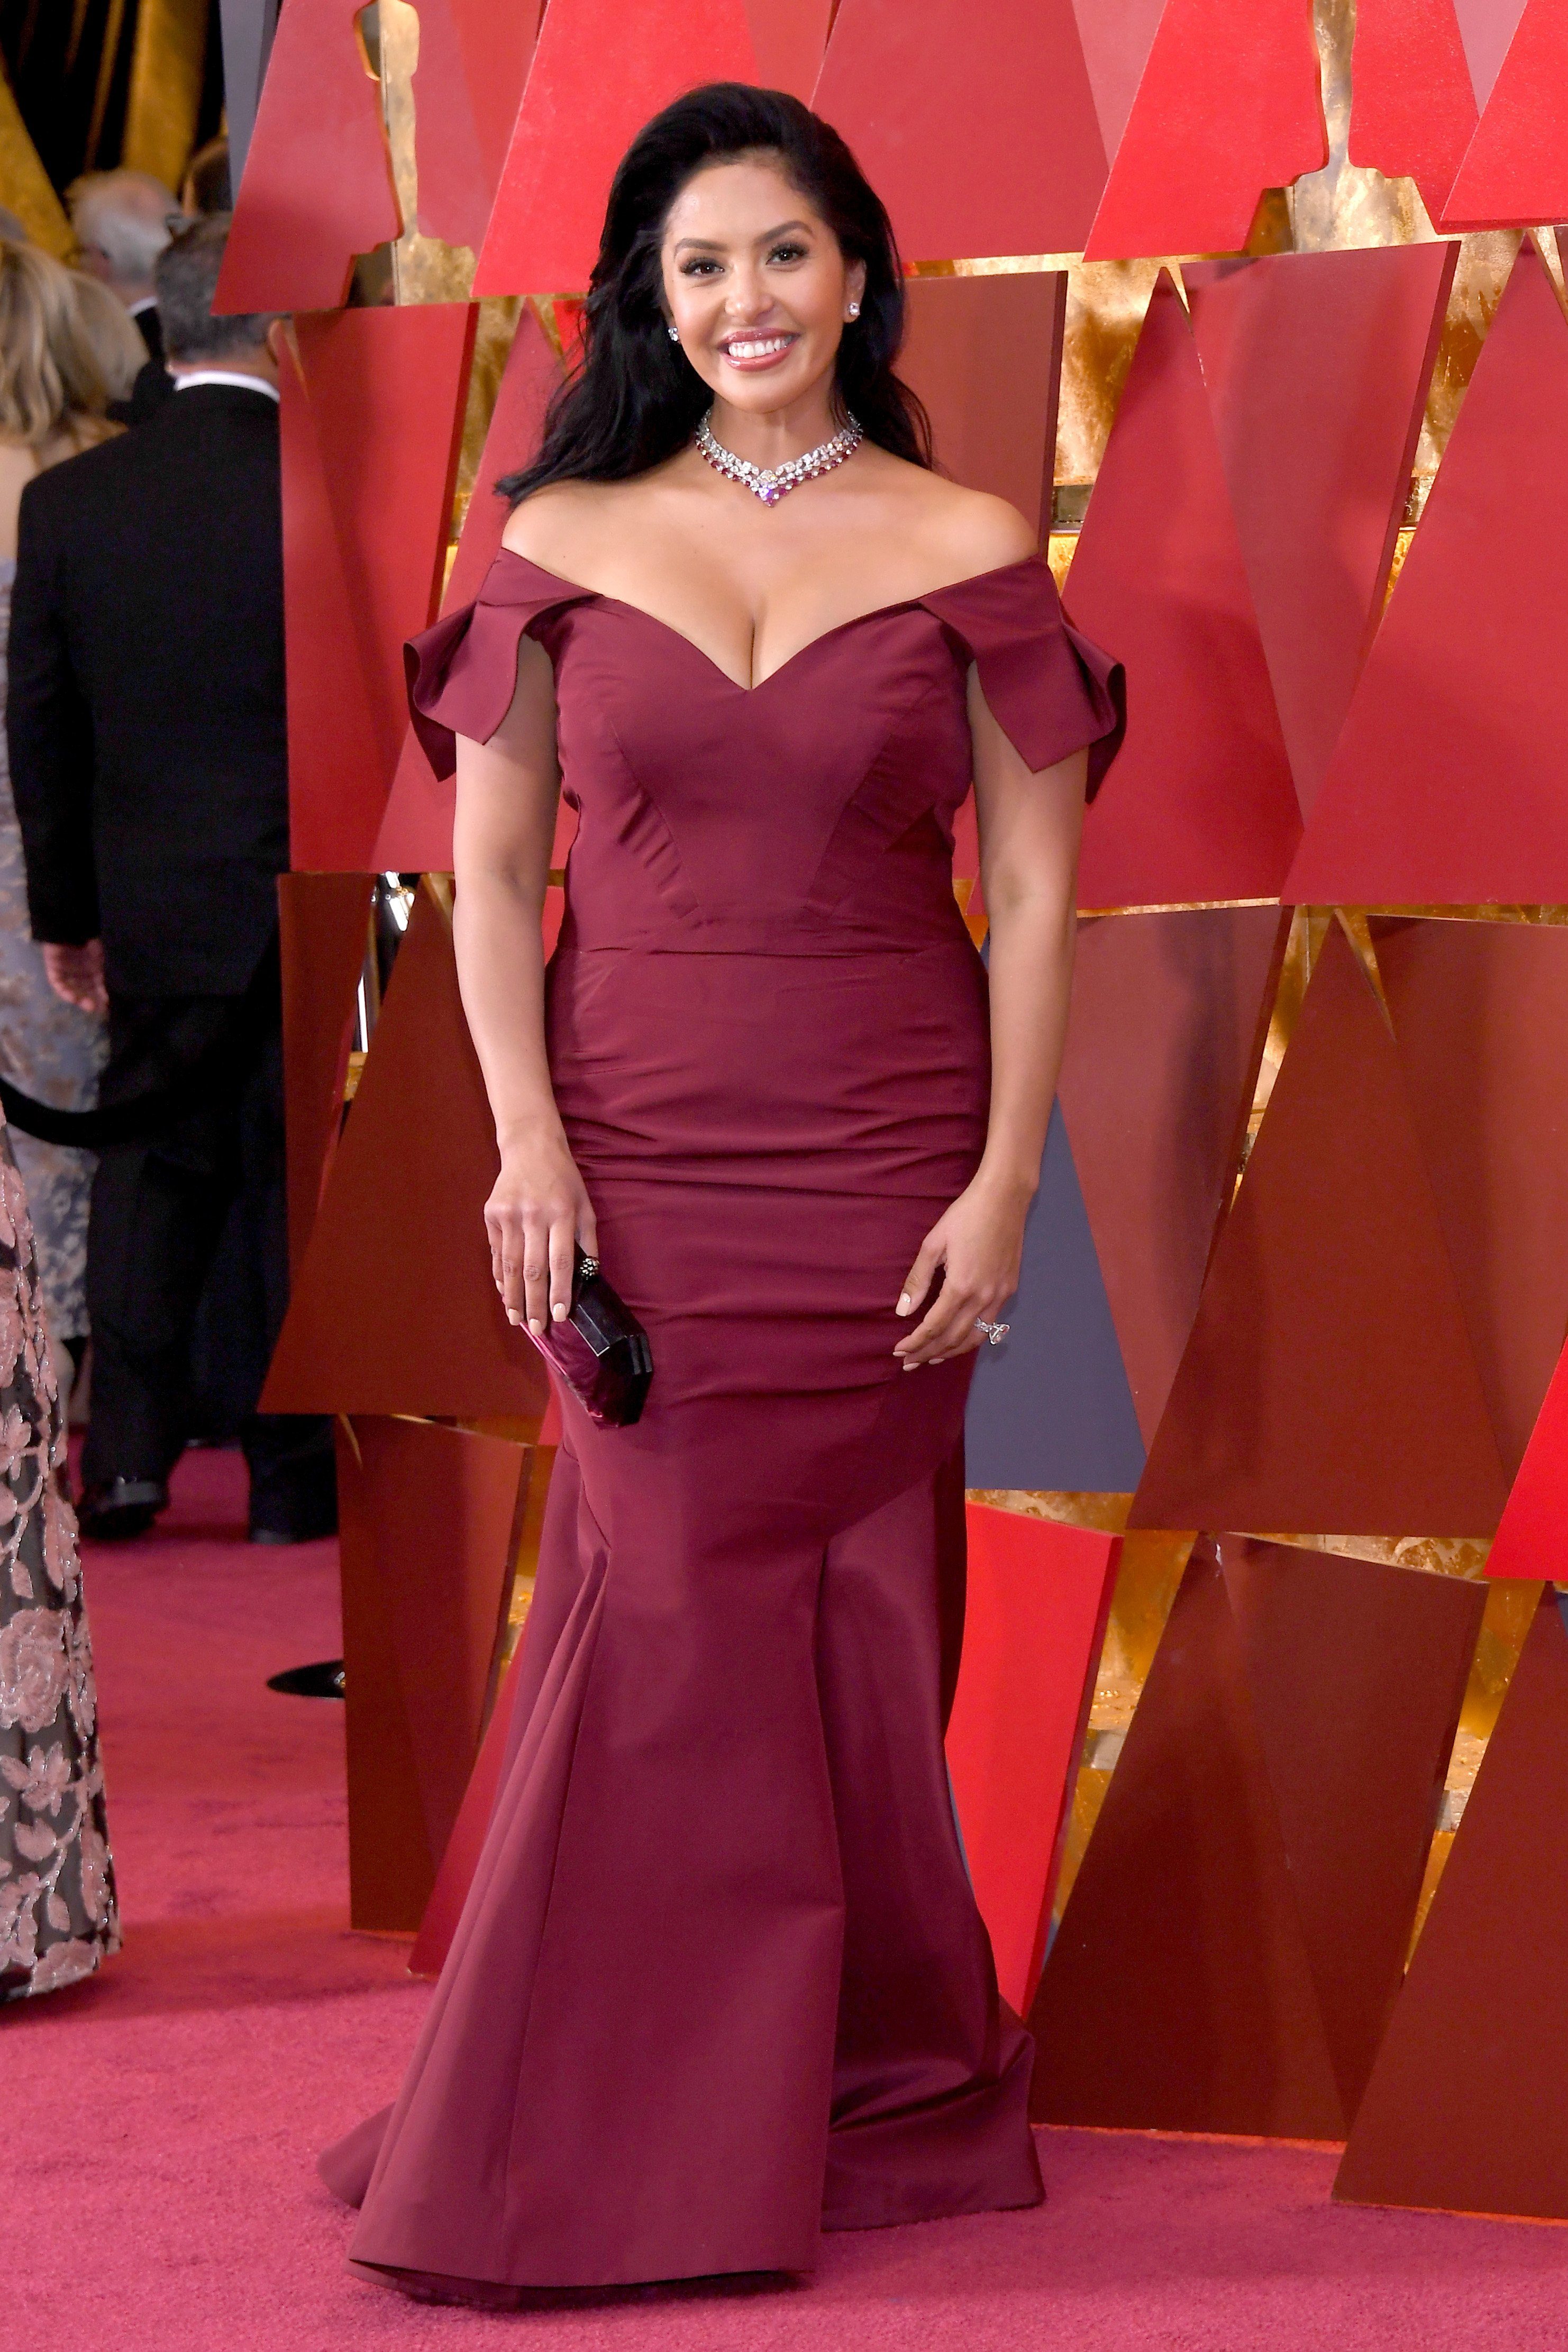 Vanessa Laine Bryant poses at the 90th Annual Academy Awards on March 4, 2018 in Hollywood, California. | Source: Getty Images